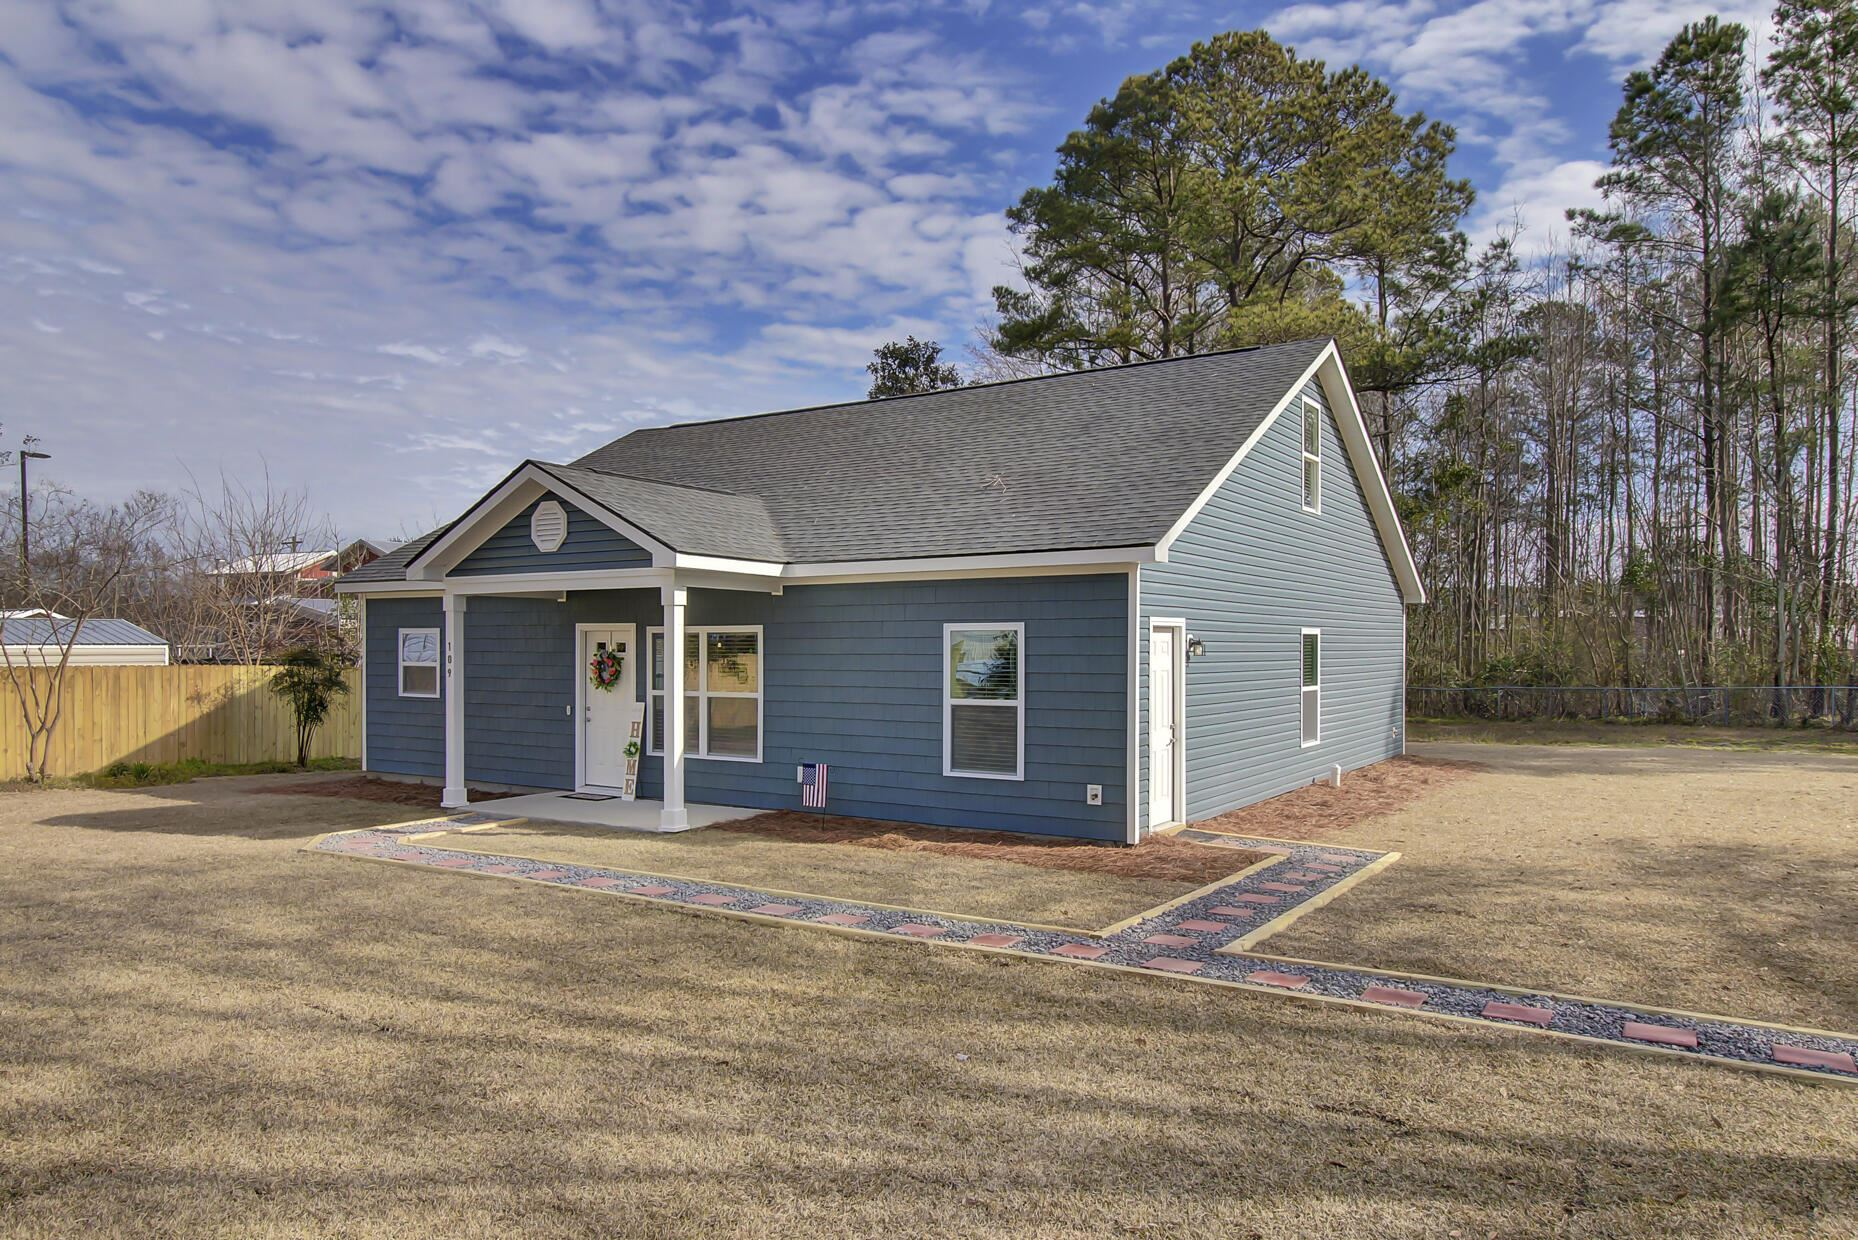 Photo of 109 Cone Lane, Summerville, SC 29483 (MLS # 21004813)